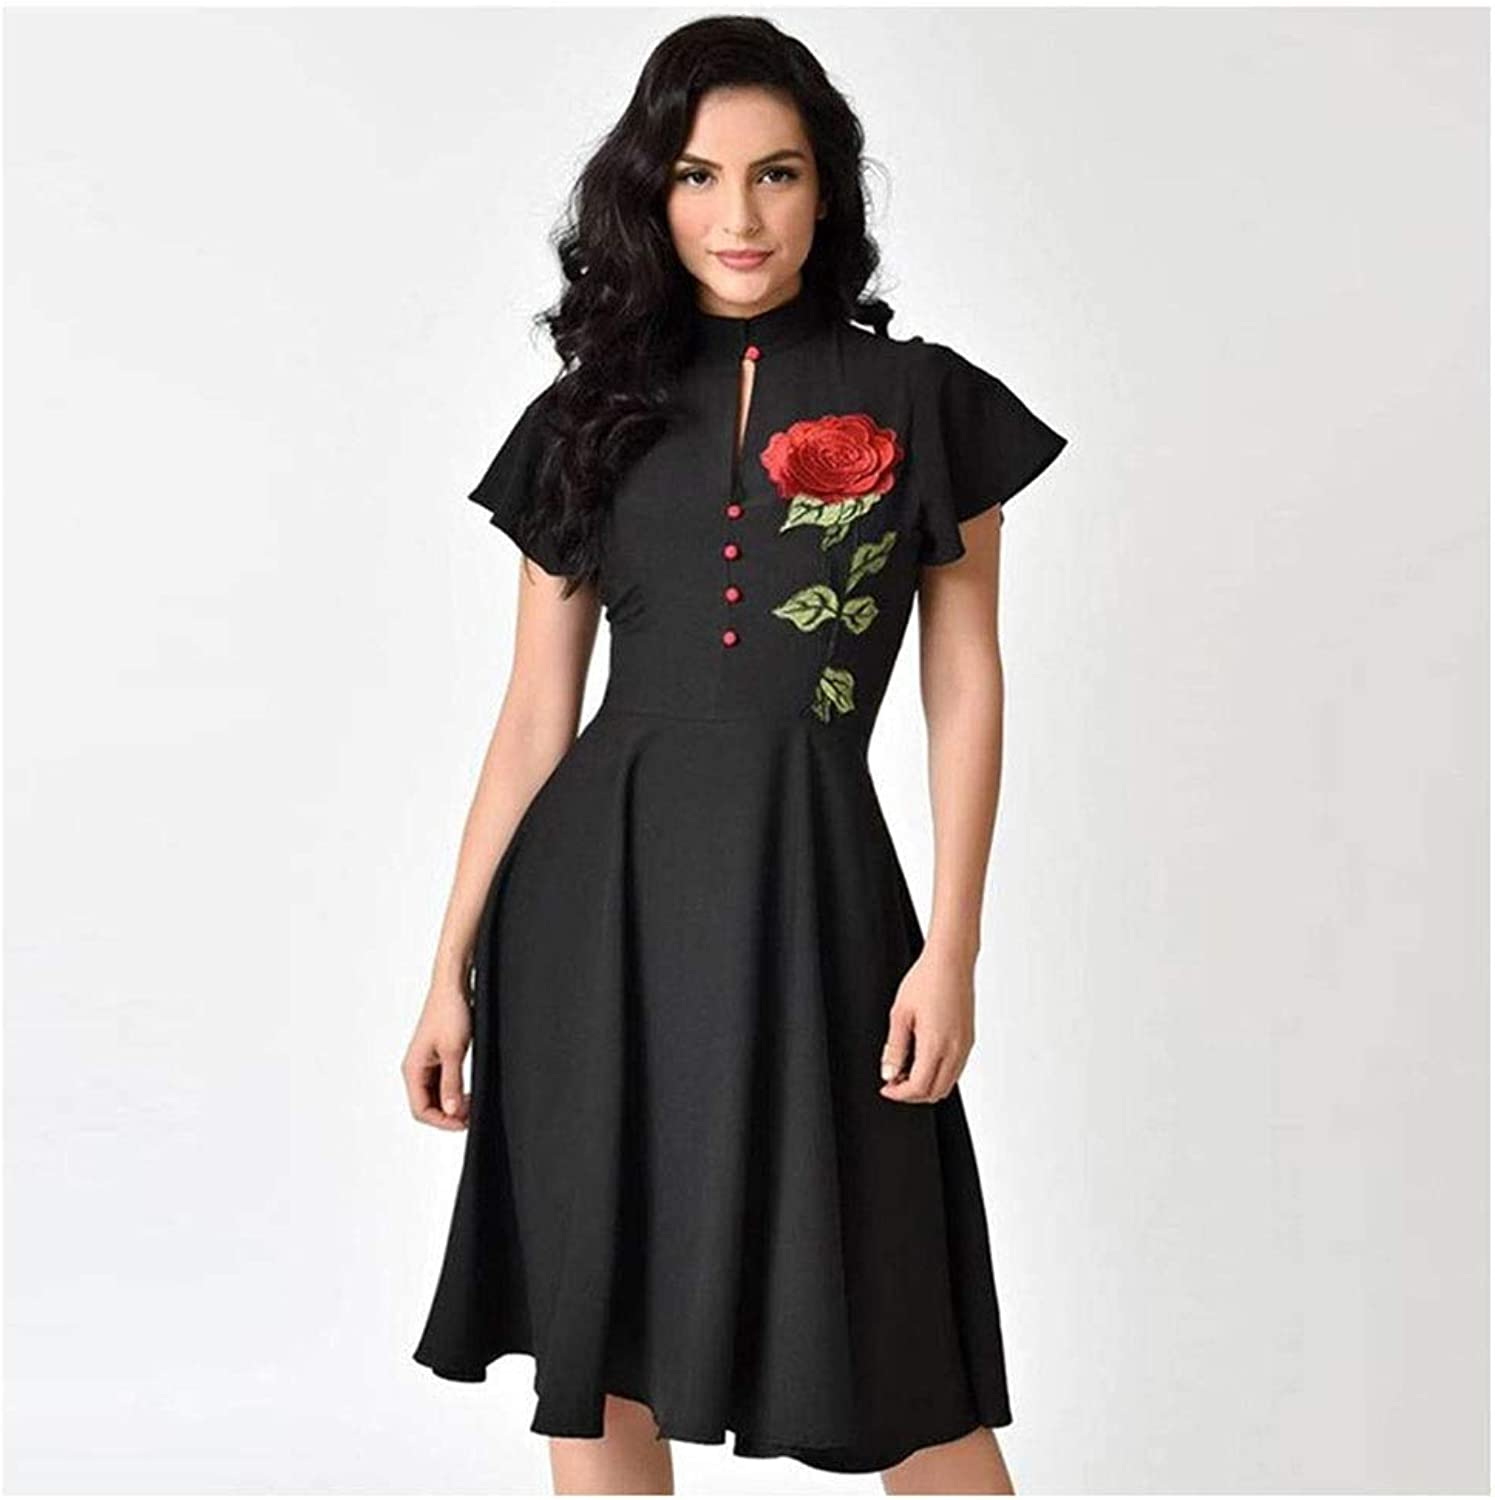 CARRY Dress, Europe and America, Comfortable and Soft Cocktail Dress, Solid color, ShortSleeved Embroidery, Professional Small Stand Aline Dress (color   Black, Size   2XL)